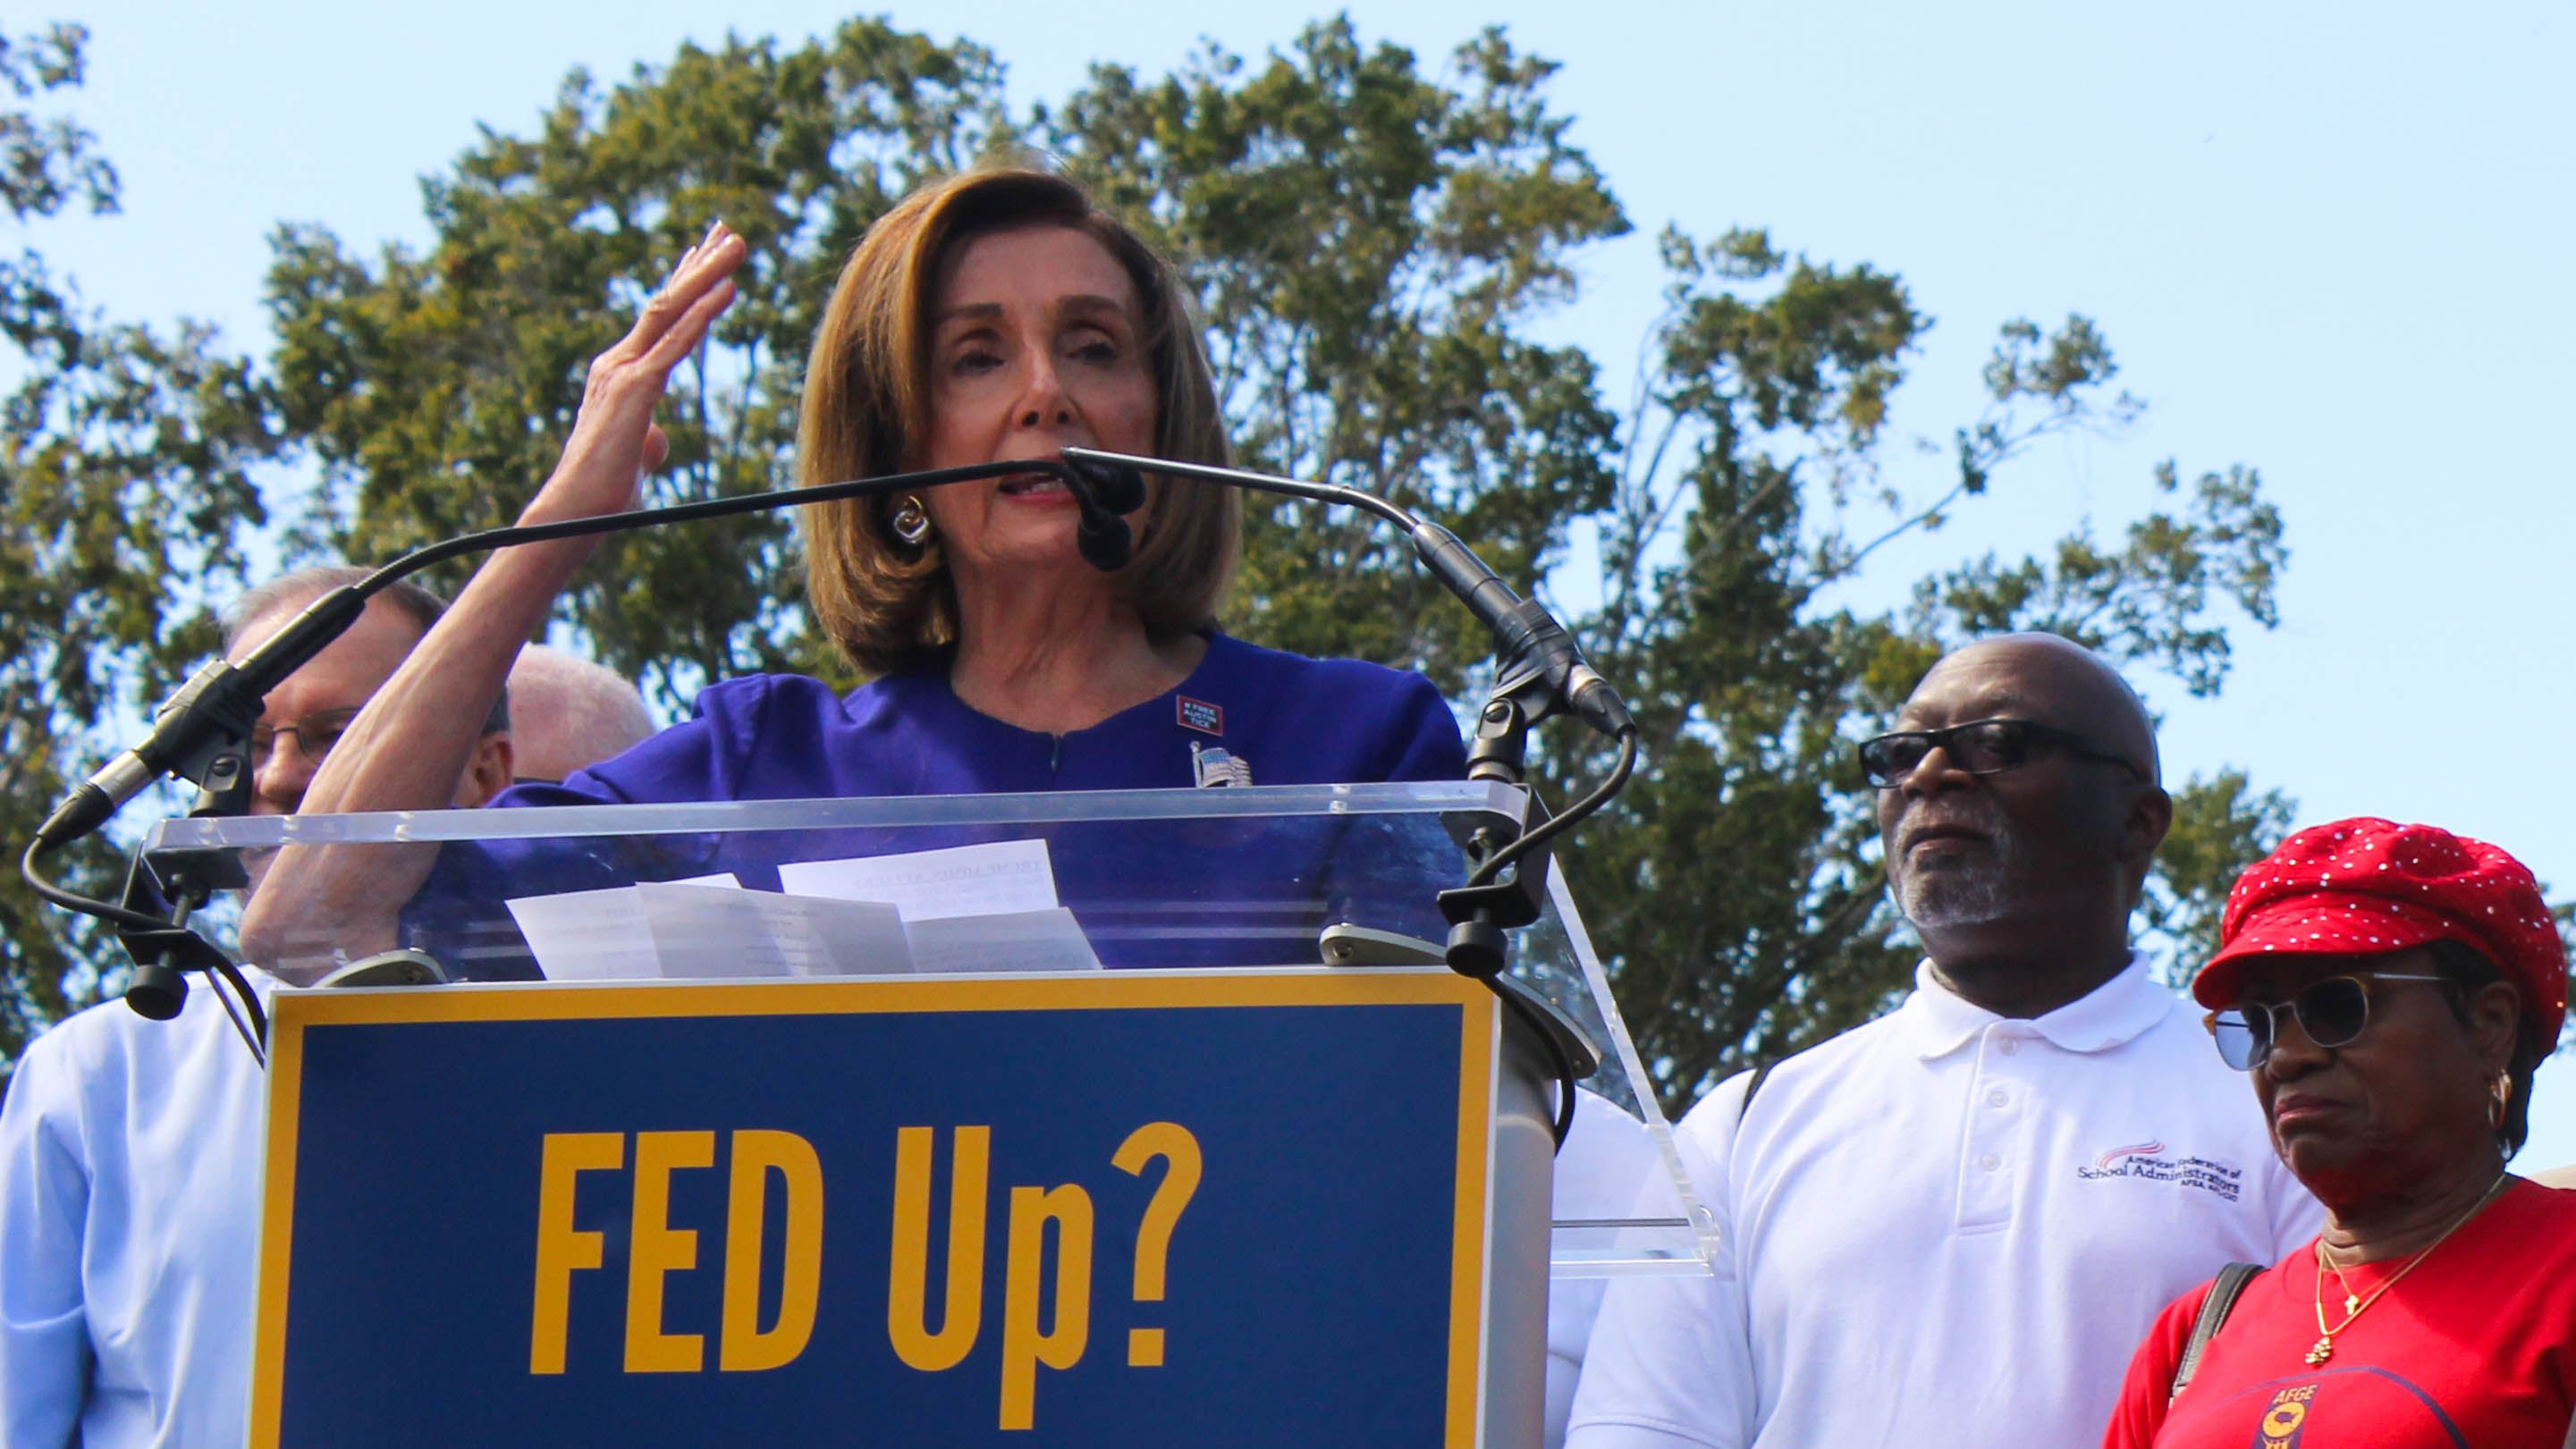 Rep. Nancy Pelosi, D-Calif, speaks to union protesters outside the U.S. Capitol building. (Jessie Bur/Staff)